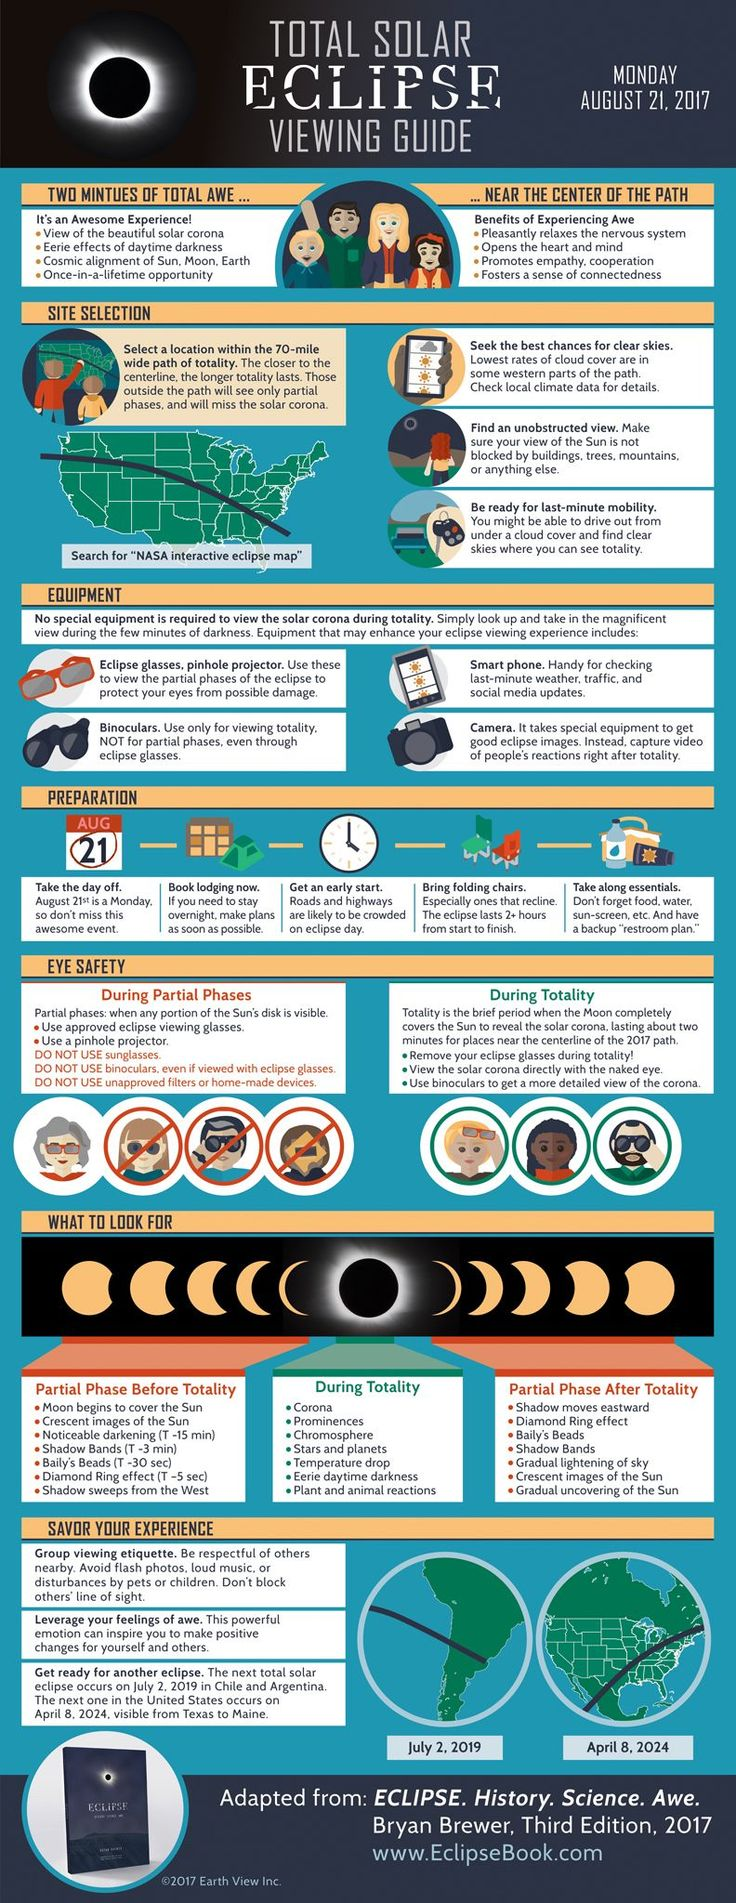 Total Solar Eclipse Viewing Guide — INFOGRAPHIC – Eclipse Book